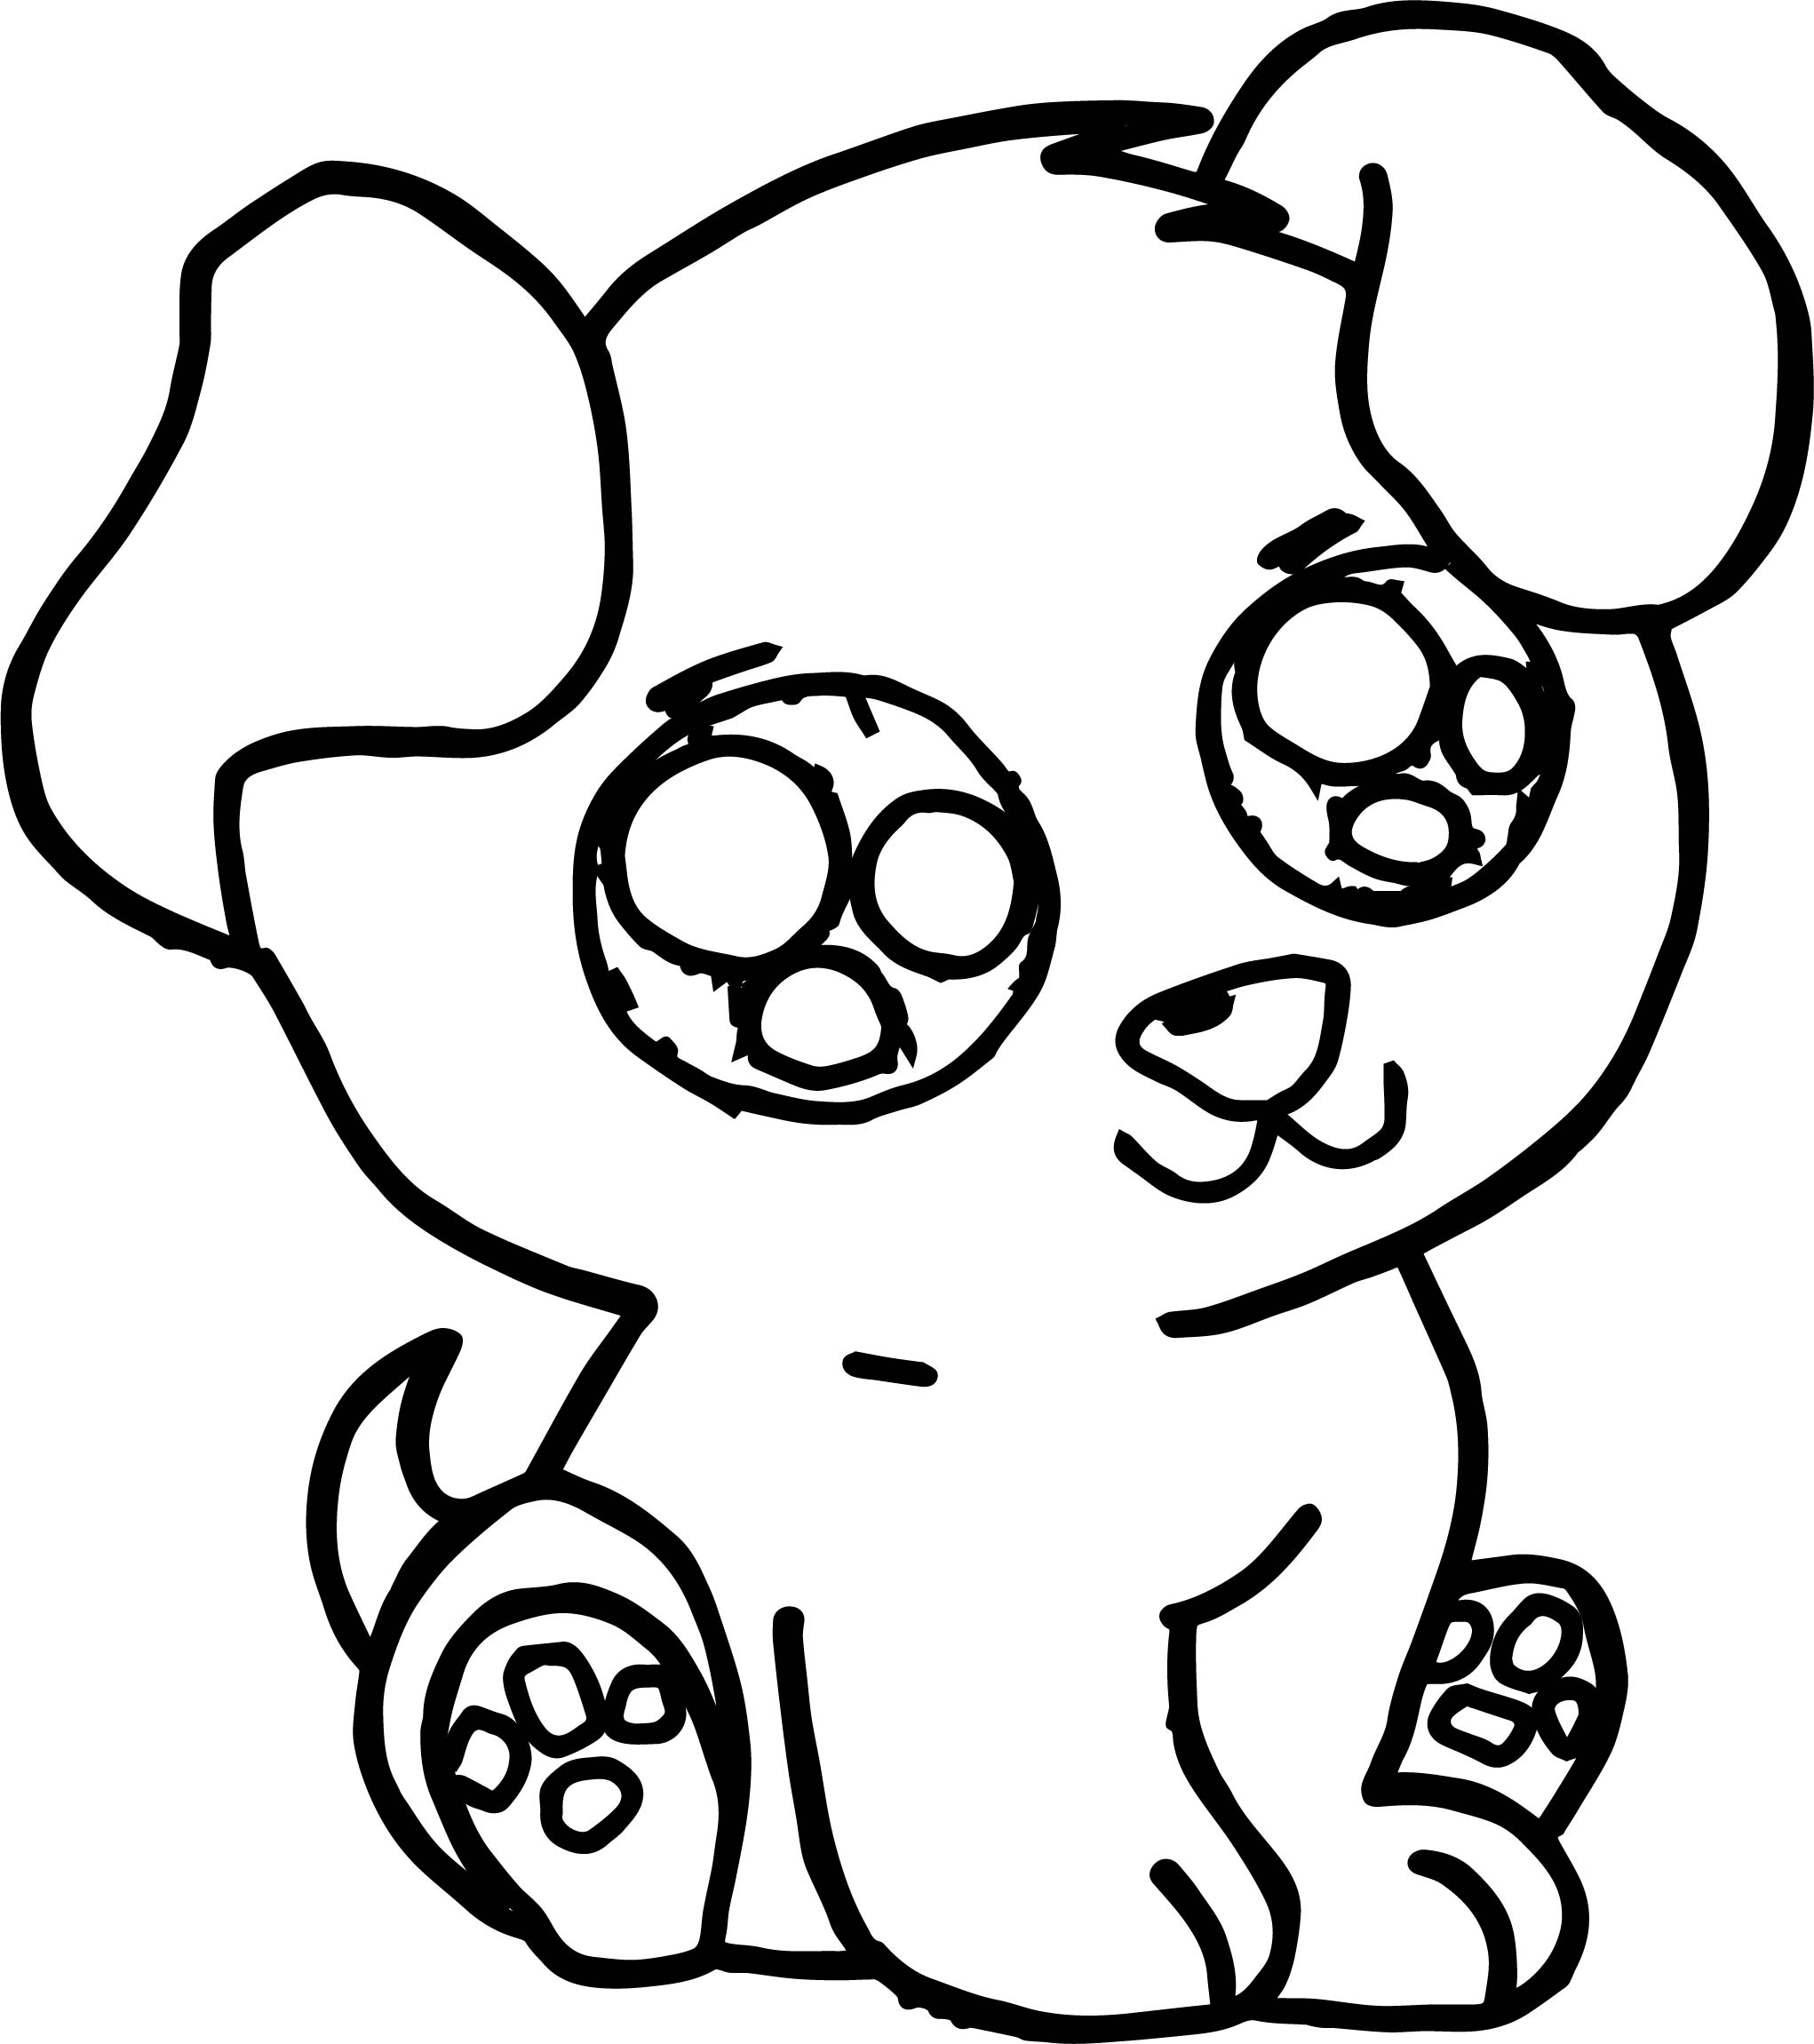 Cute puppy free images puppy dog coloring page for Cute puppies coloring pages